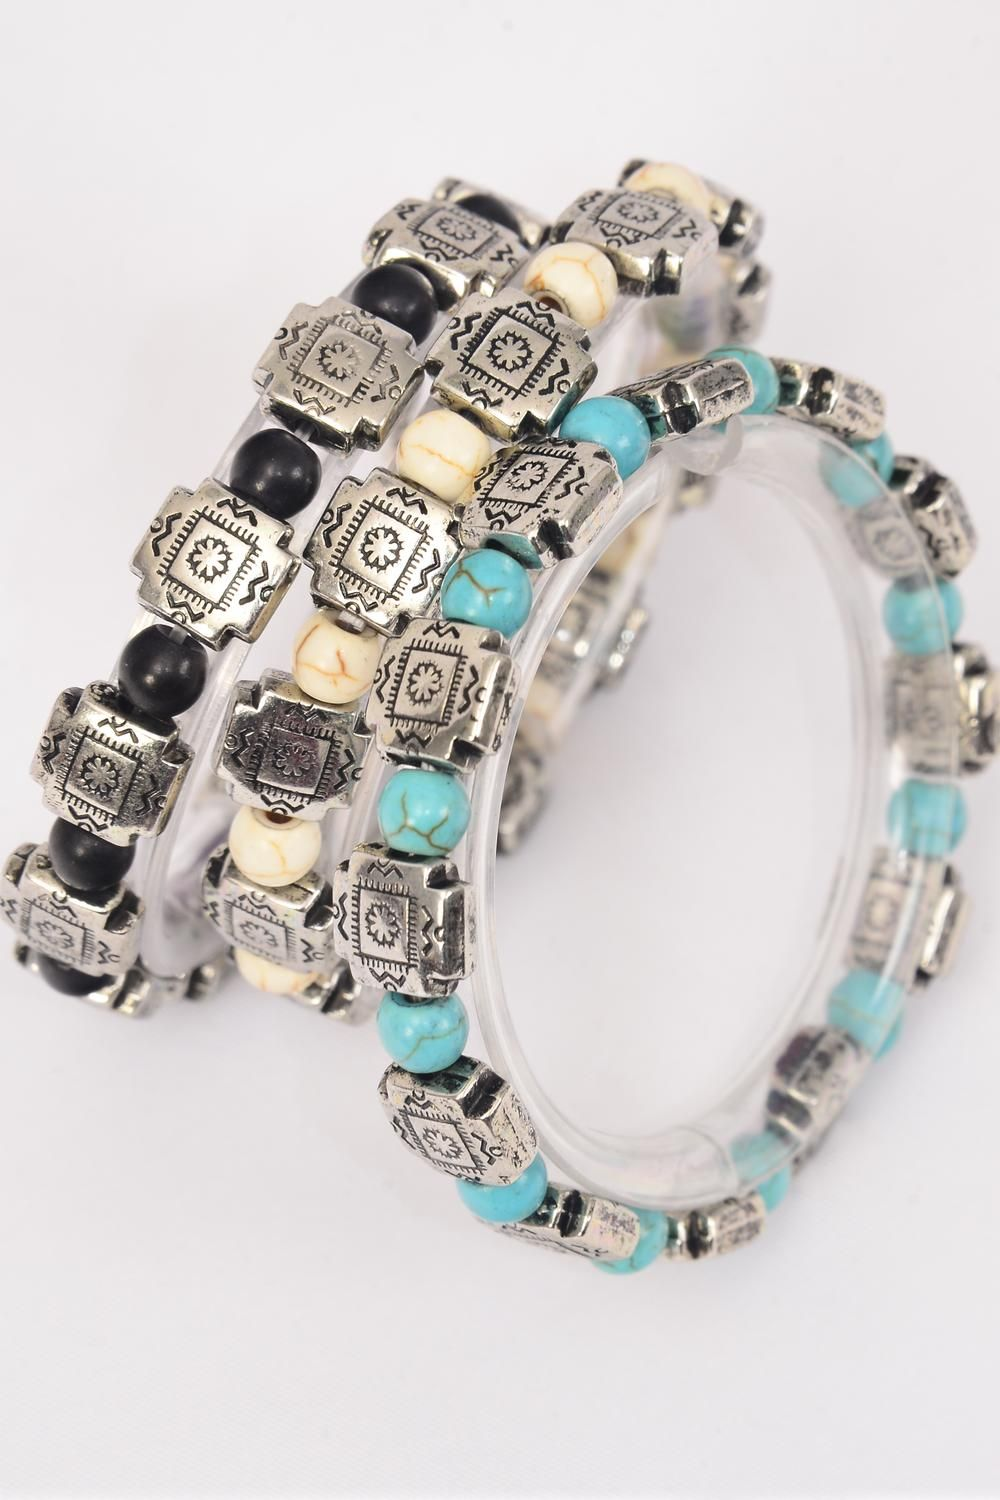 Bracelet 4 mm Semiprecious Stone & Celtic Cross Aztec Stretch/DZ **Stretch** 4 Black,4 Ivory,4 Turquoise,3 Color Asst,Hang Tag & Opp Bag & UPC Code